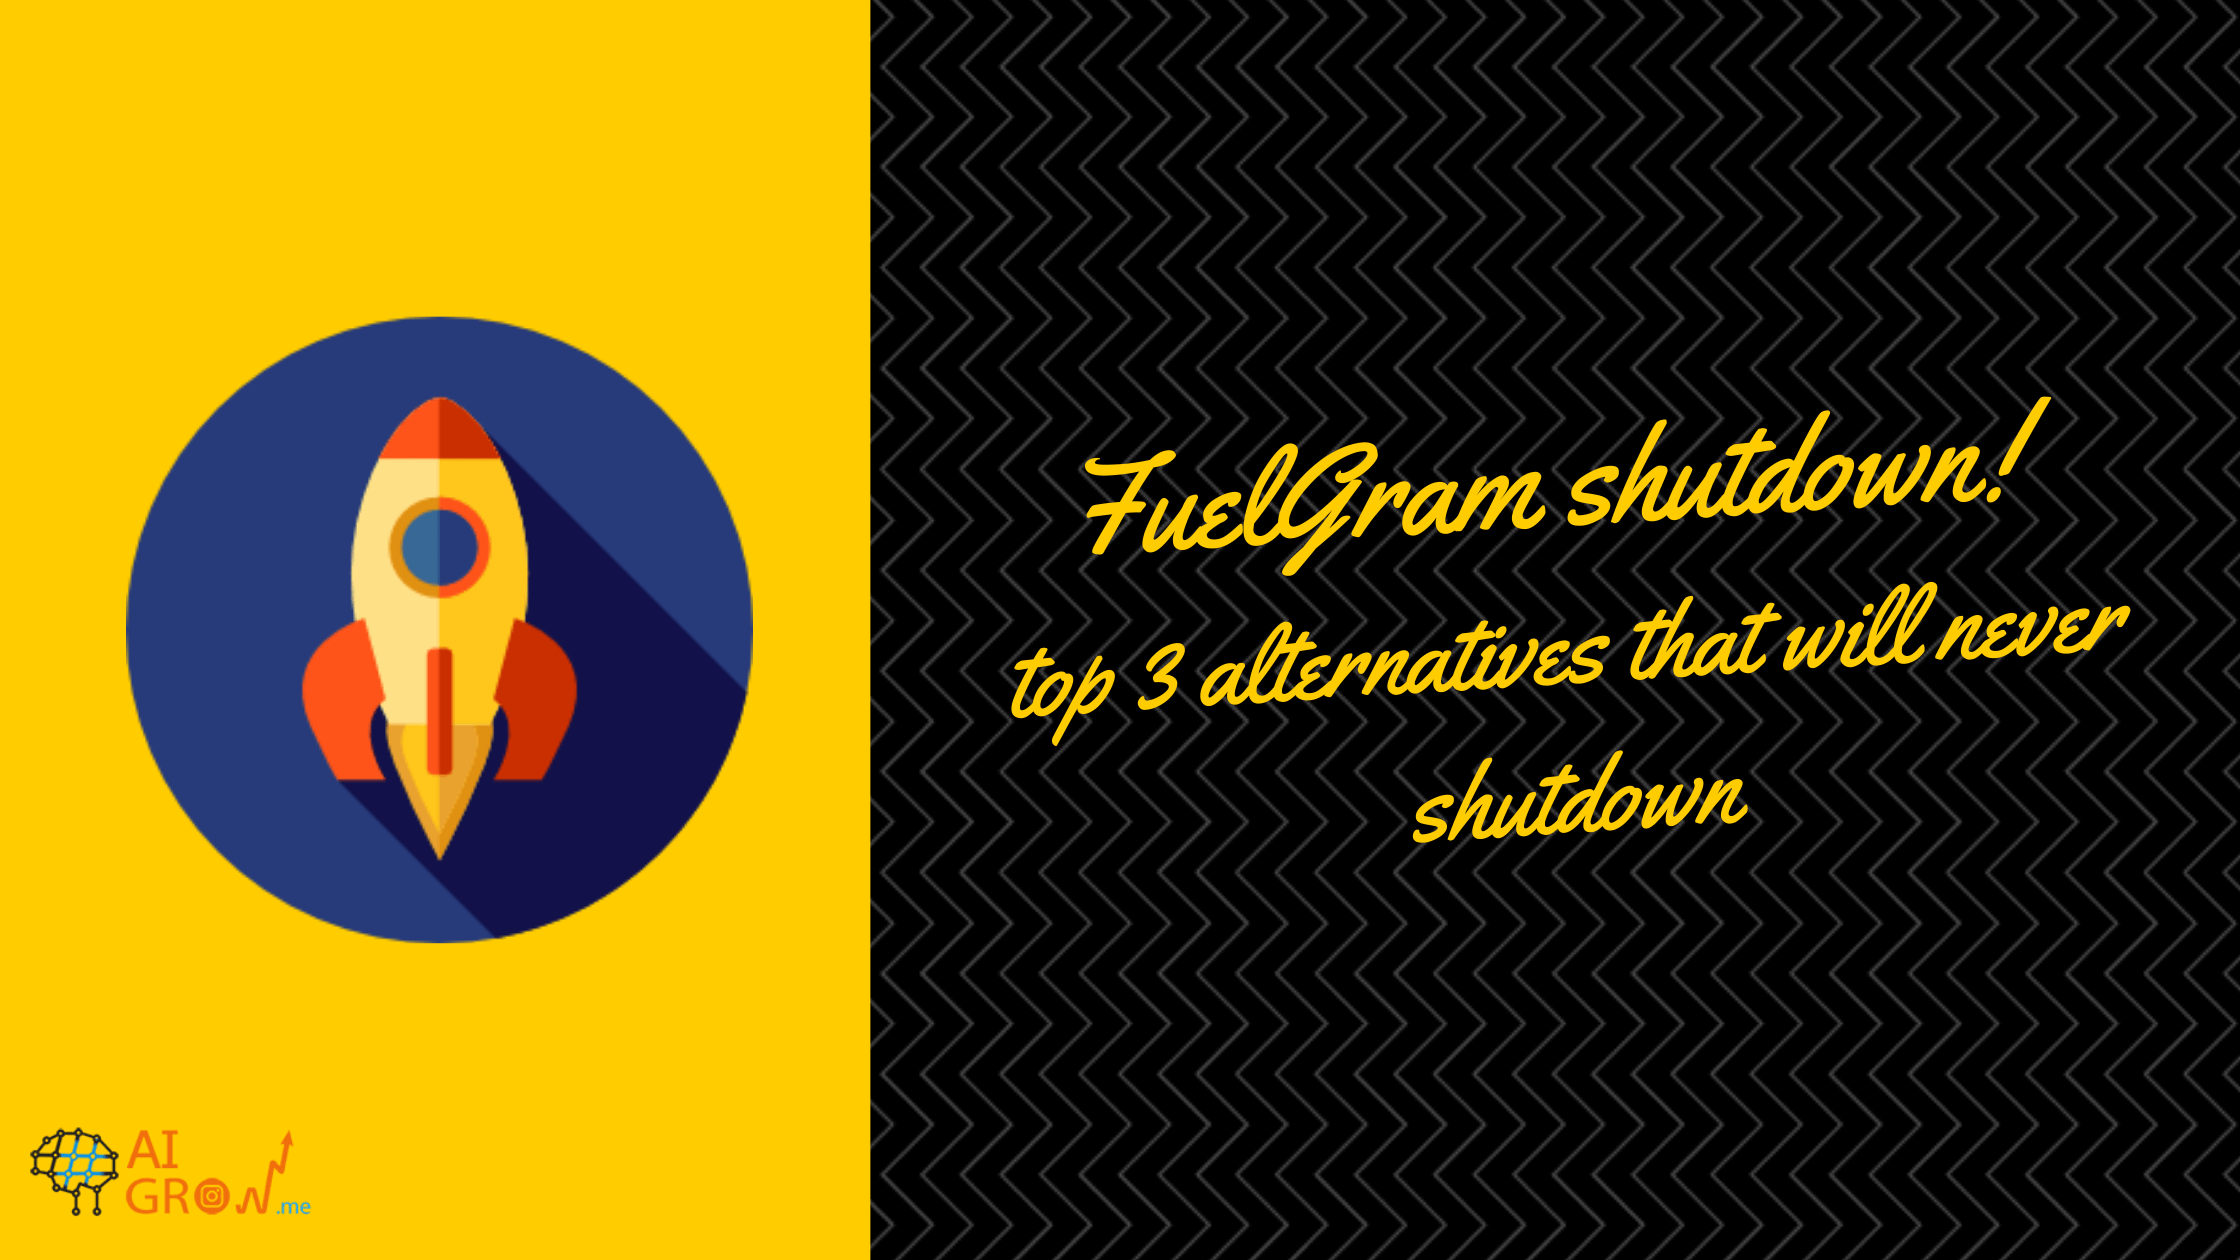 FuelGram Shutdown! Top Alternatives That Will Never Shutdown